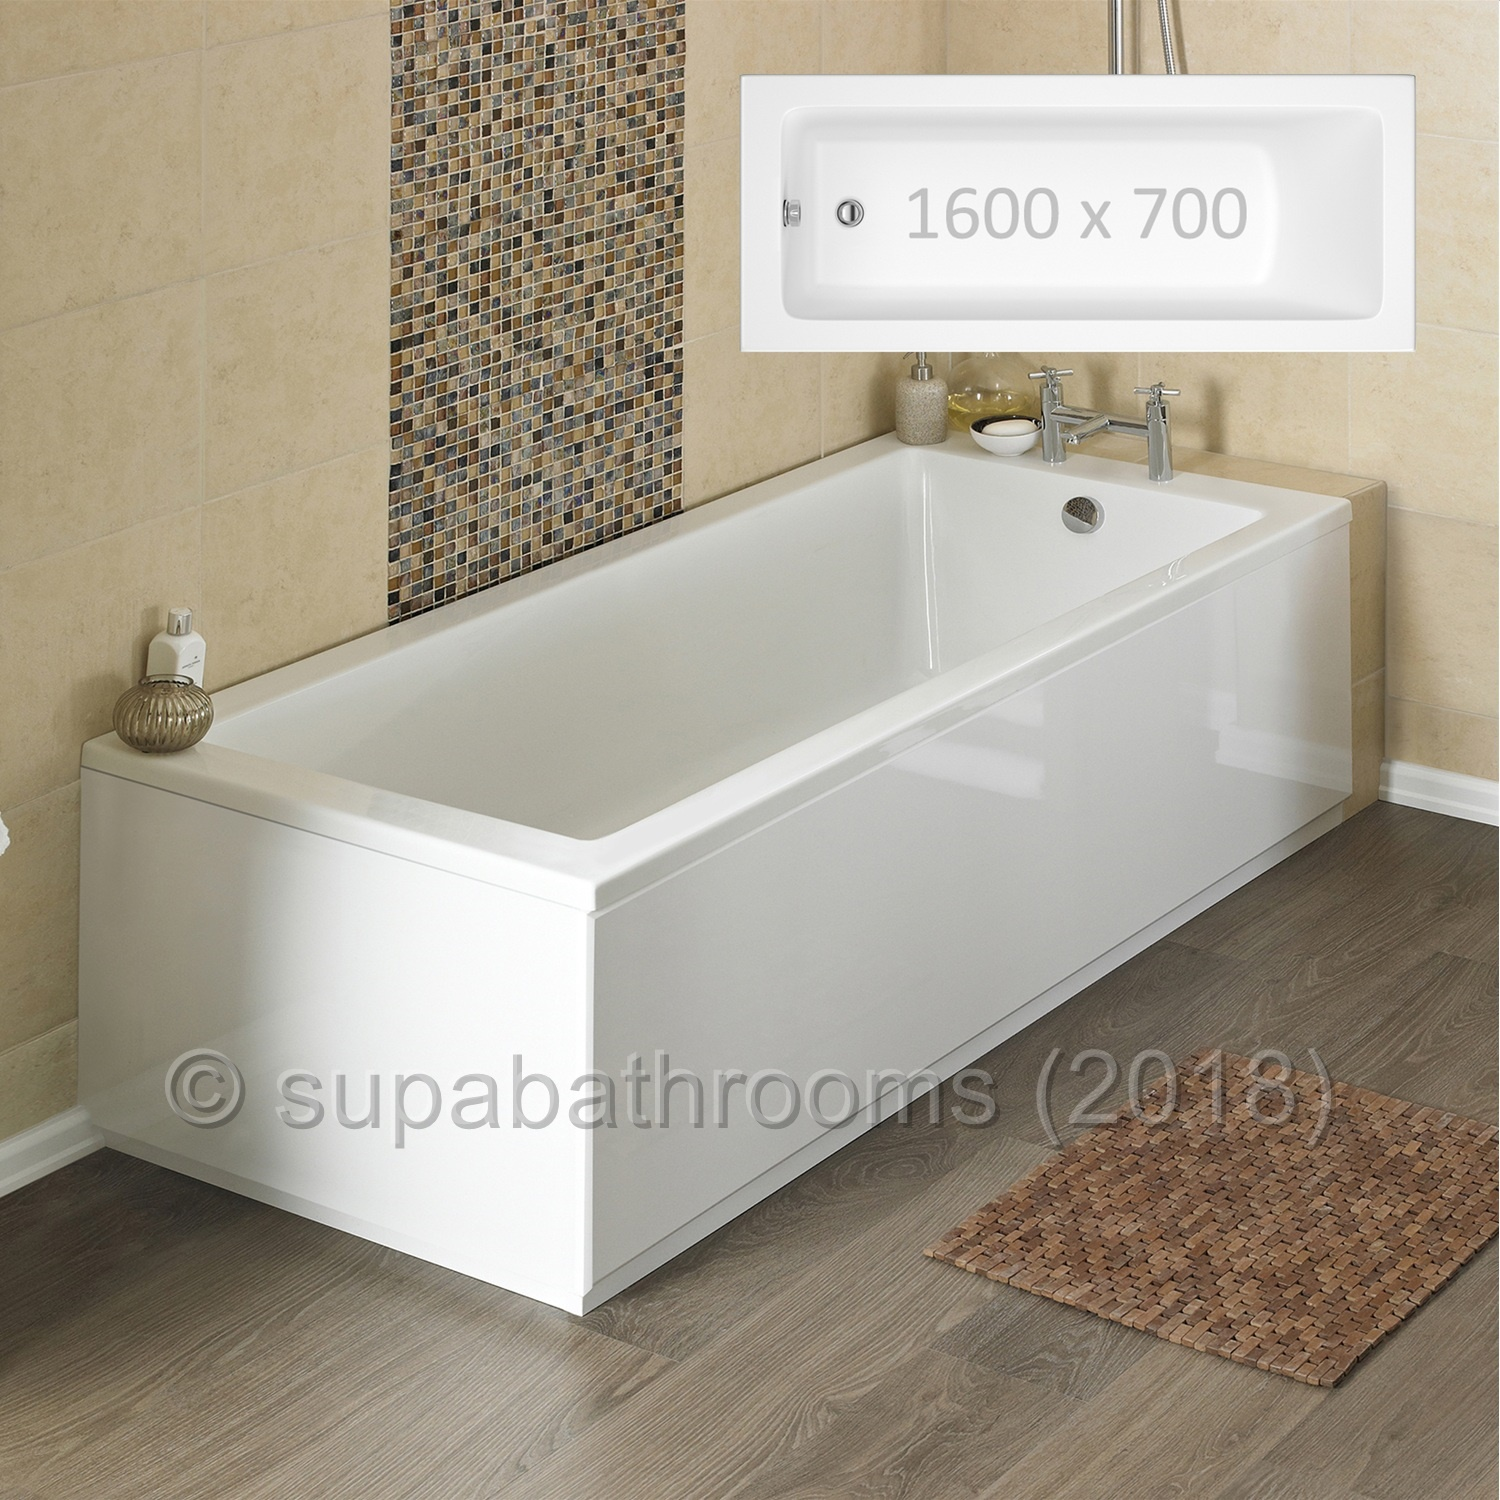 1600x700 Linton Single Ended Fibreglass Encapsulated Acrylic Bath ...